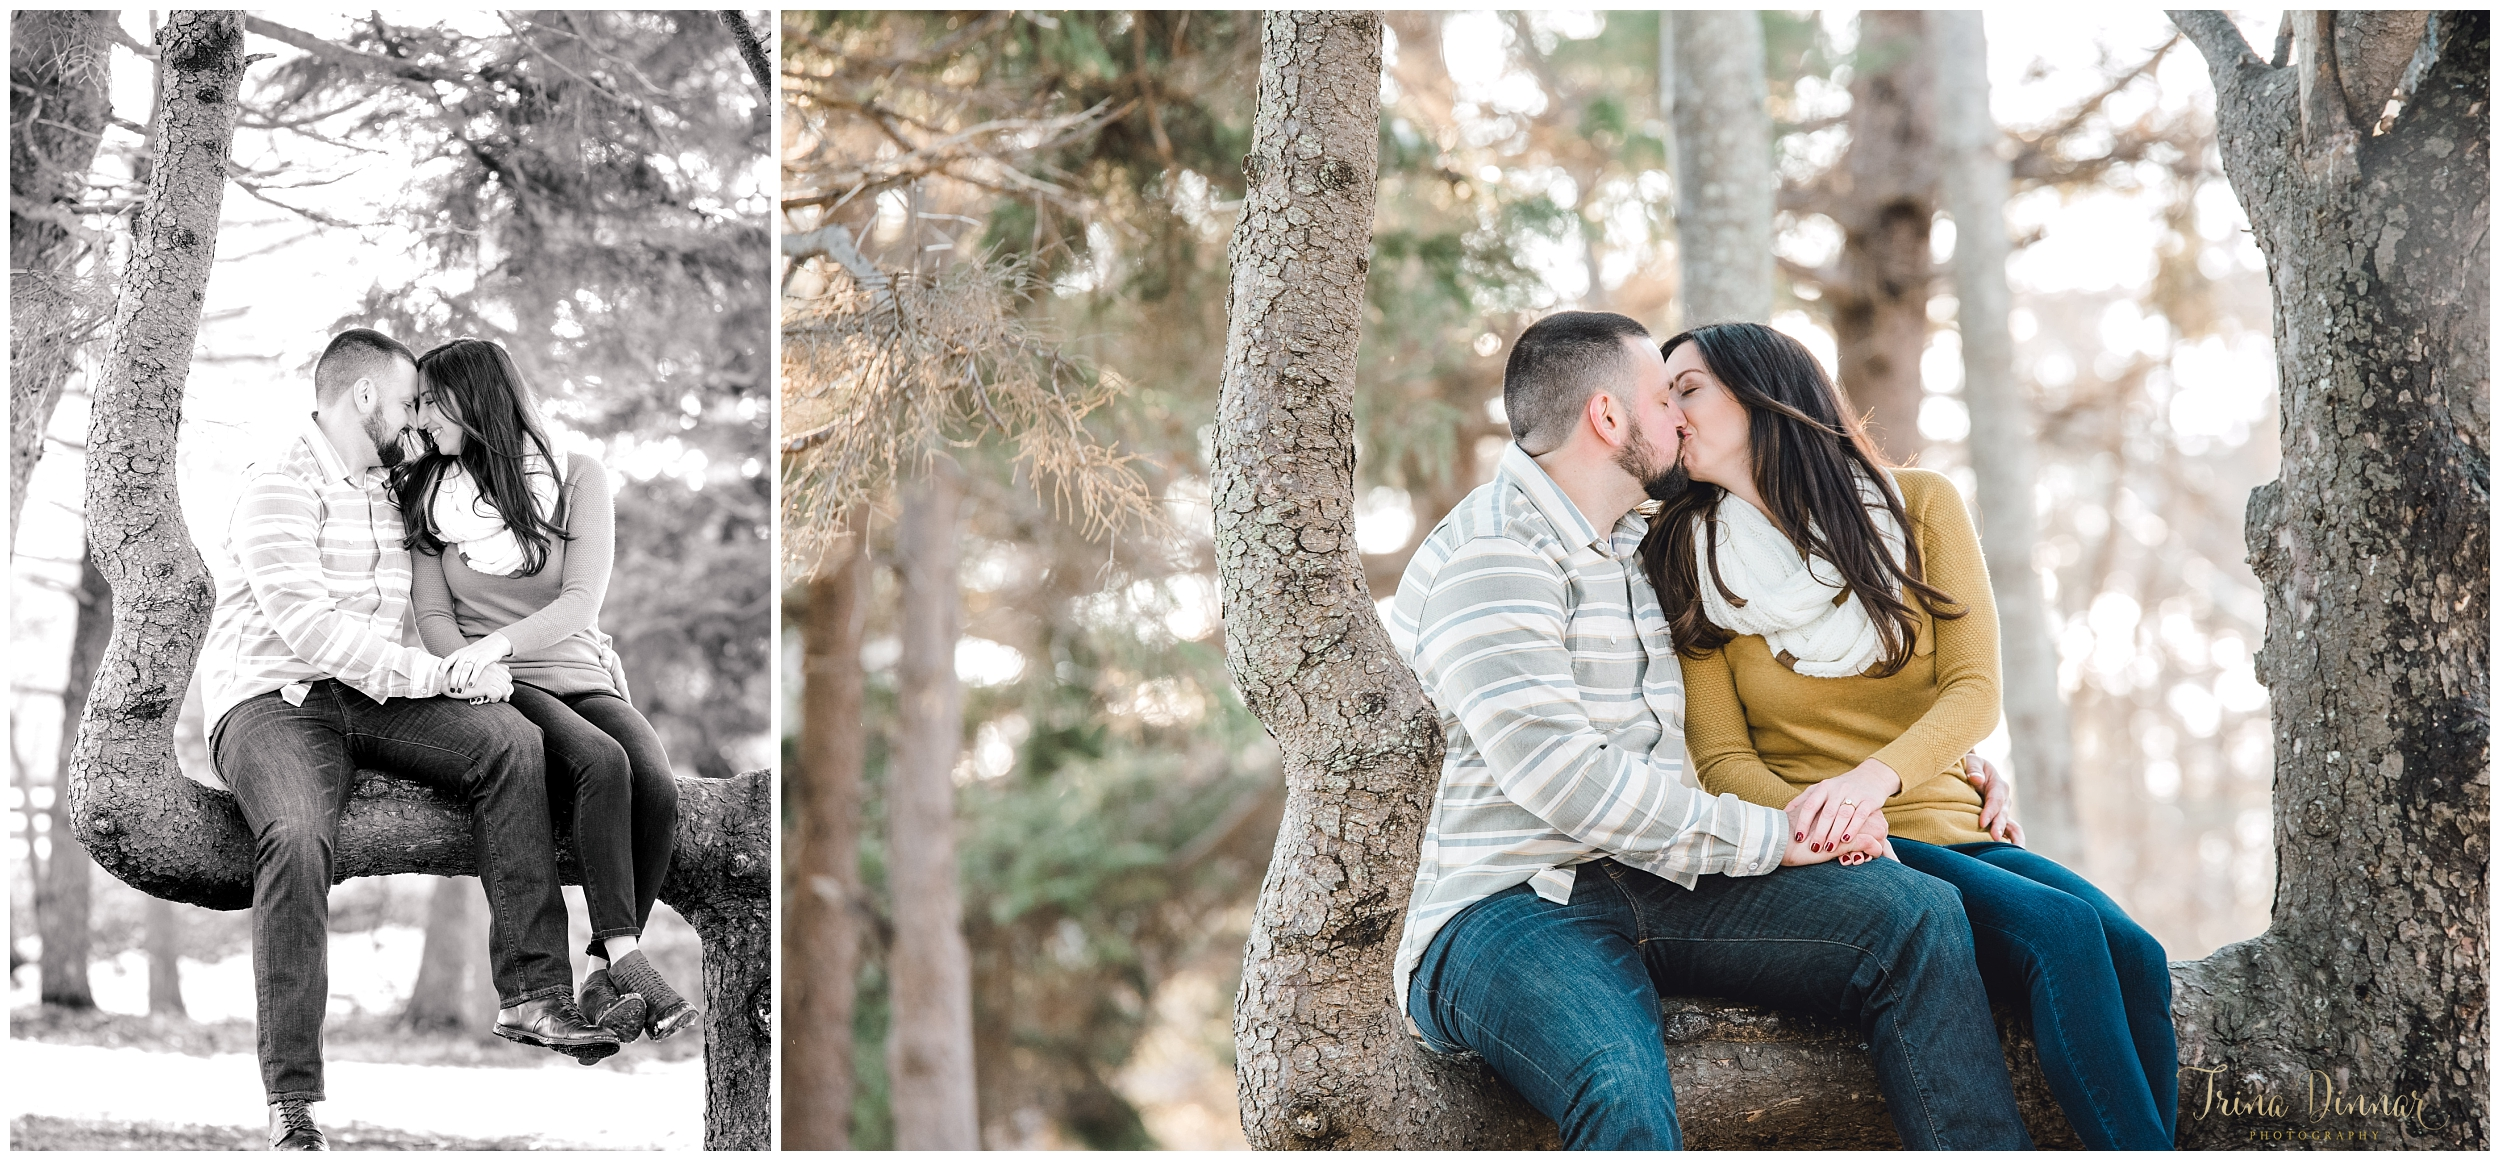 Couple Kiss during their Portrait Photo session in Maine